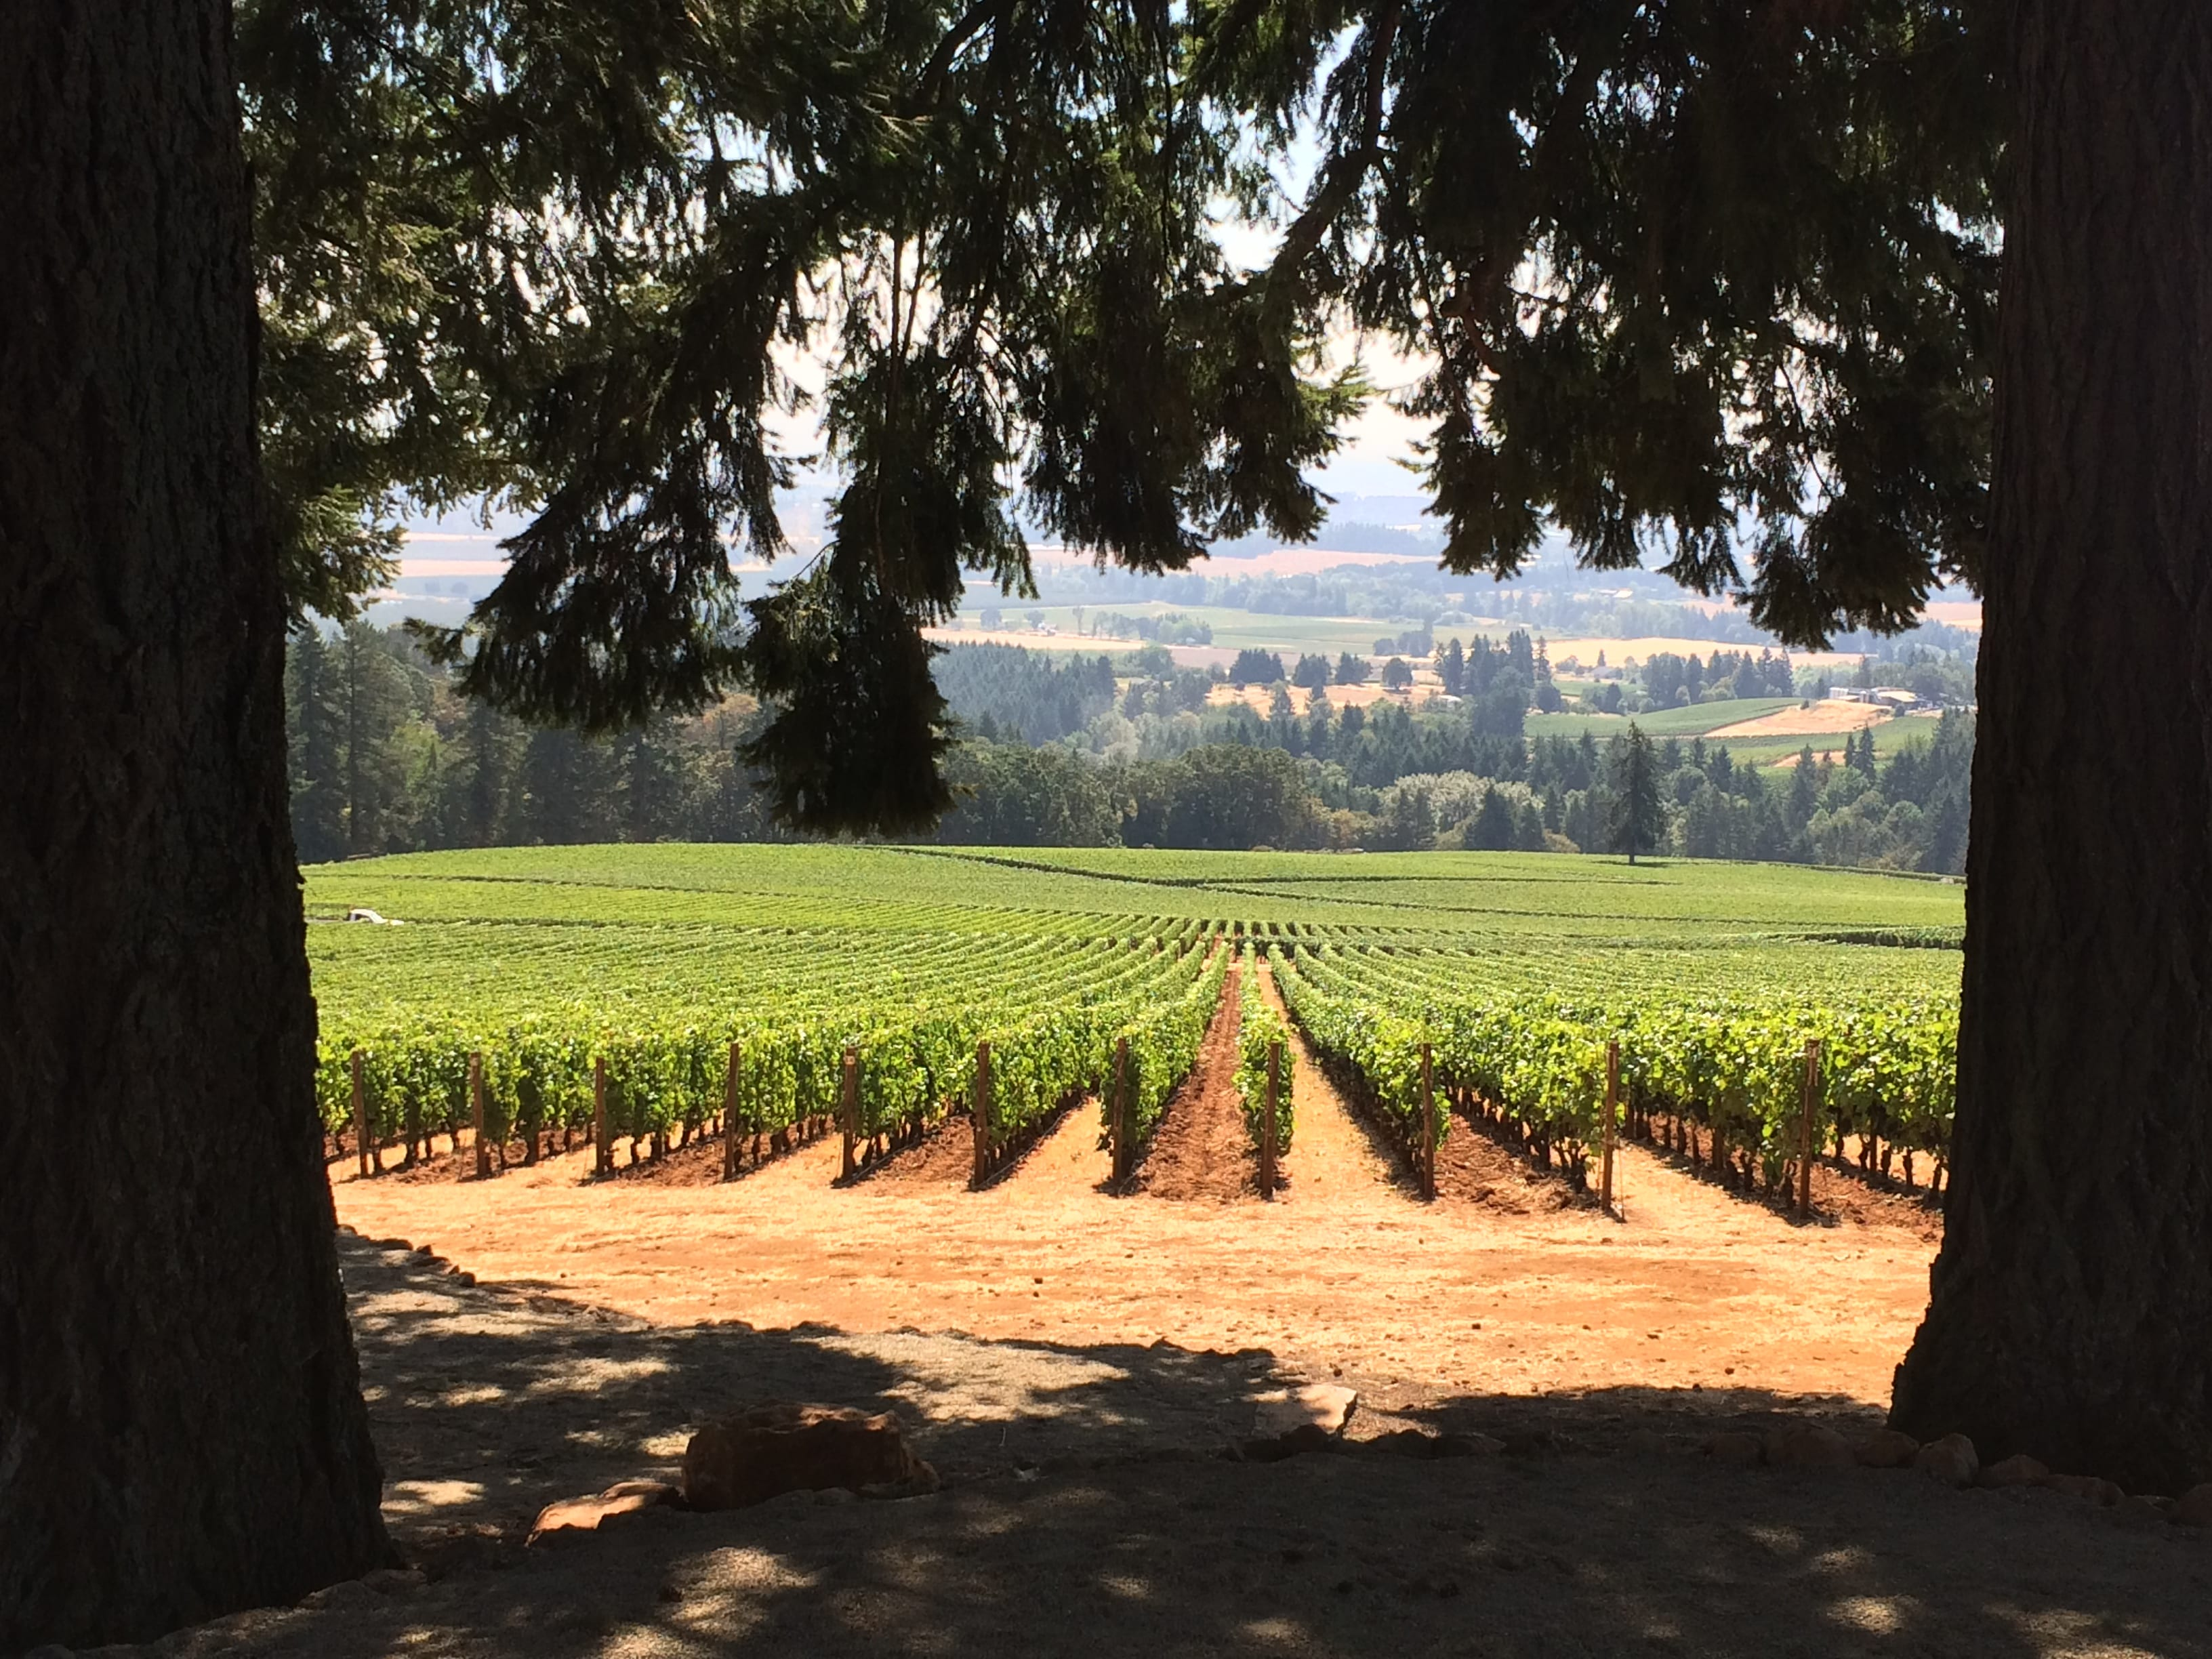 The vineyard view at Domaine Drouhin.